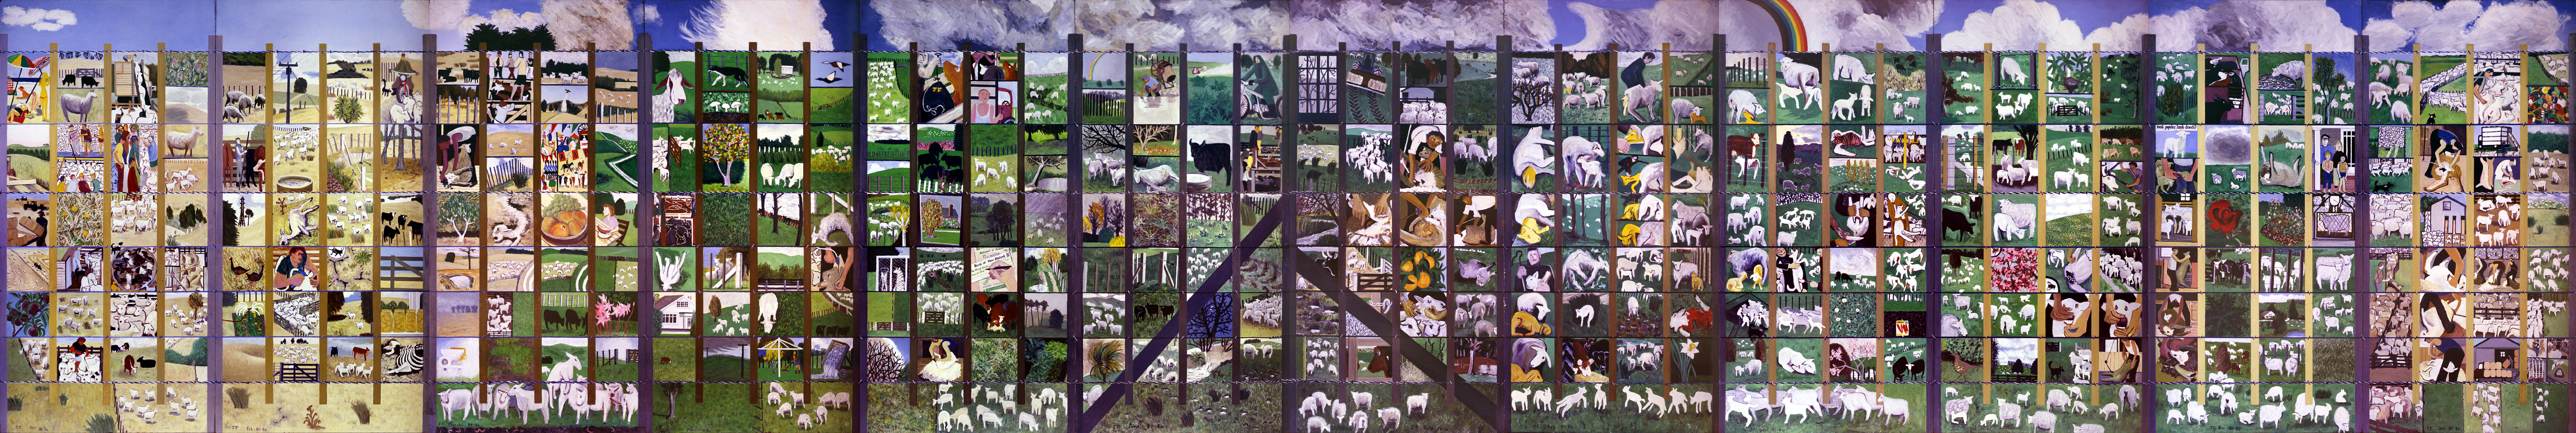 Four Seasons on the Farm mural